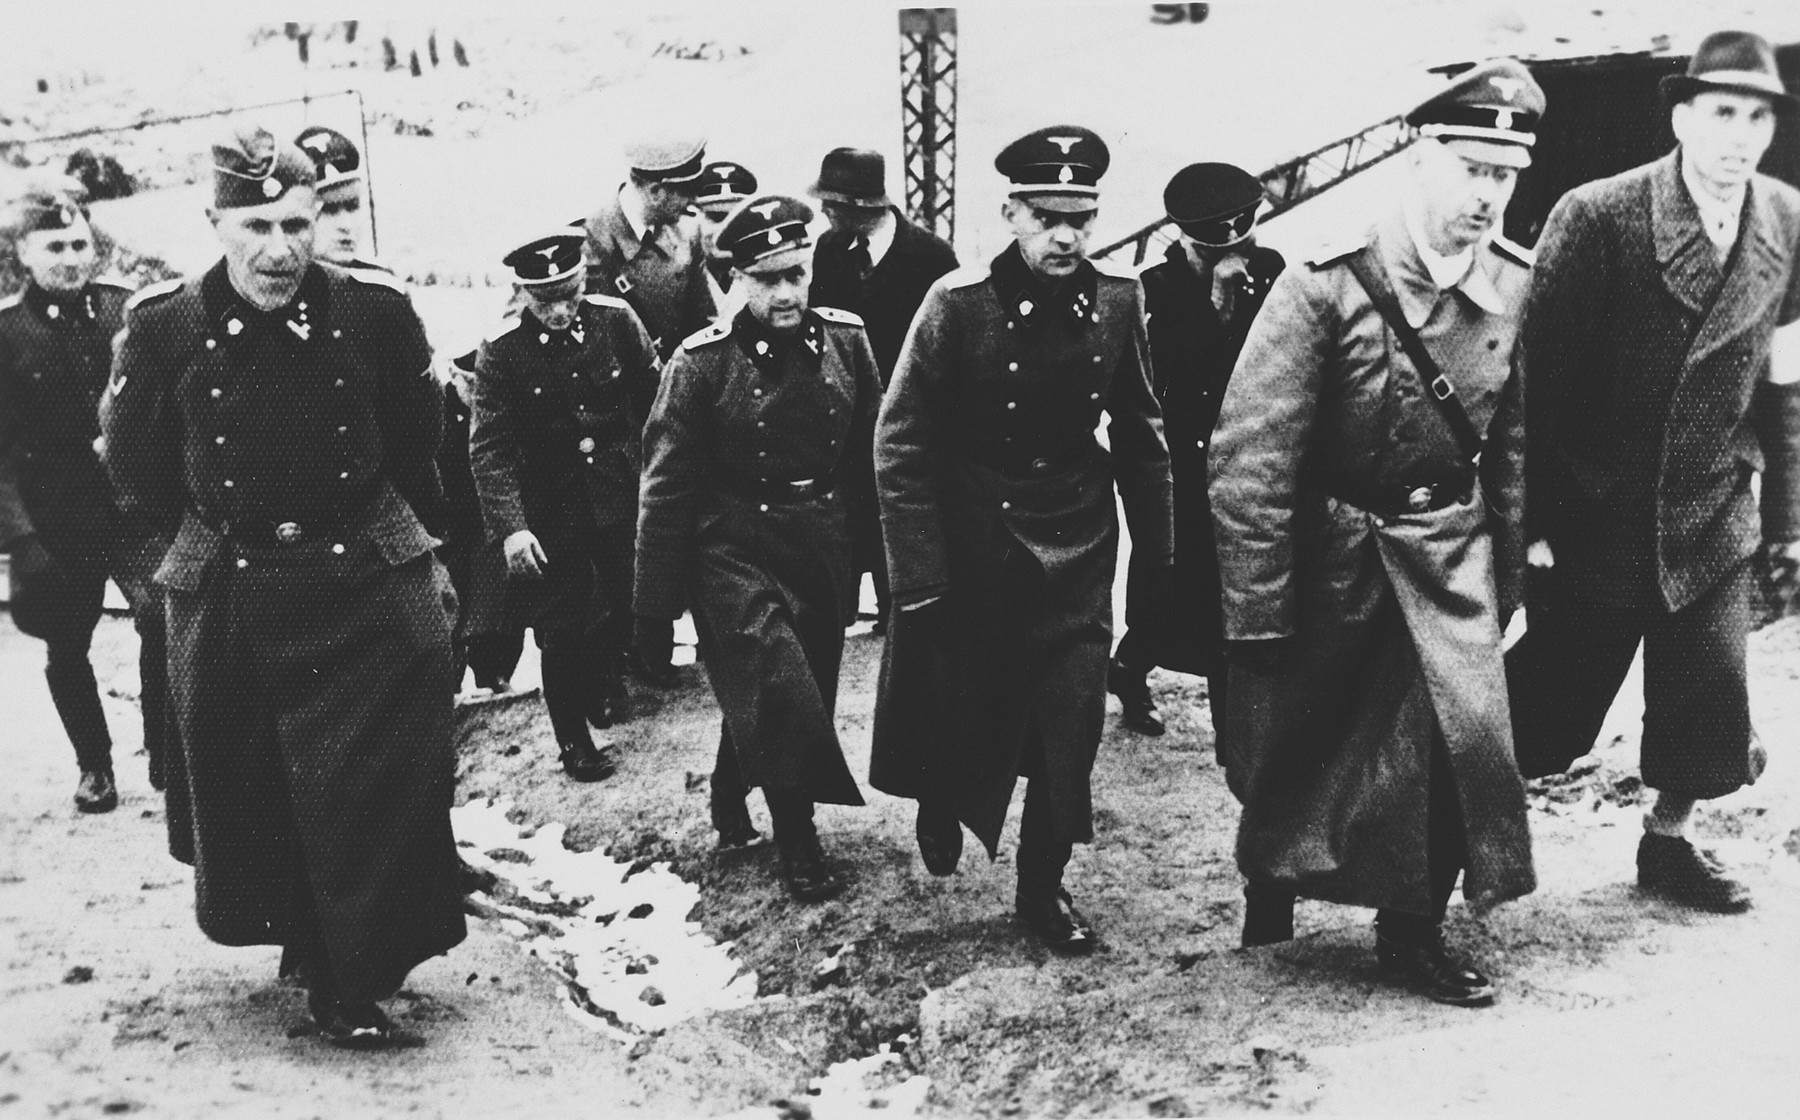 Heinrich Himmler inspects the Flossenbuerg concentration camp.  Heinrich Himmler is pictured on second from the right.  He is accompanied by his new adjutant Ludwig Baumgartner and Hans Huettig, who was responsible for the camp post office and censorship.  Also pictured is Schutzhaftlagerfuehrer Hans Aumeier.